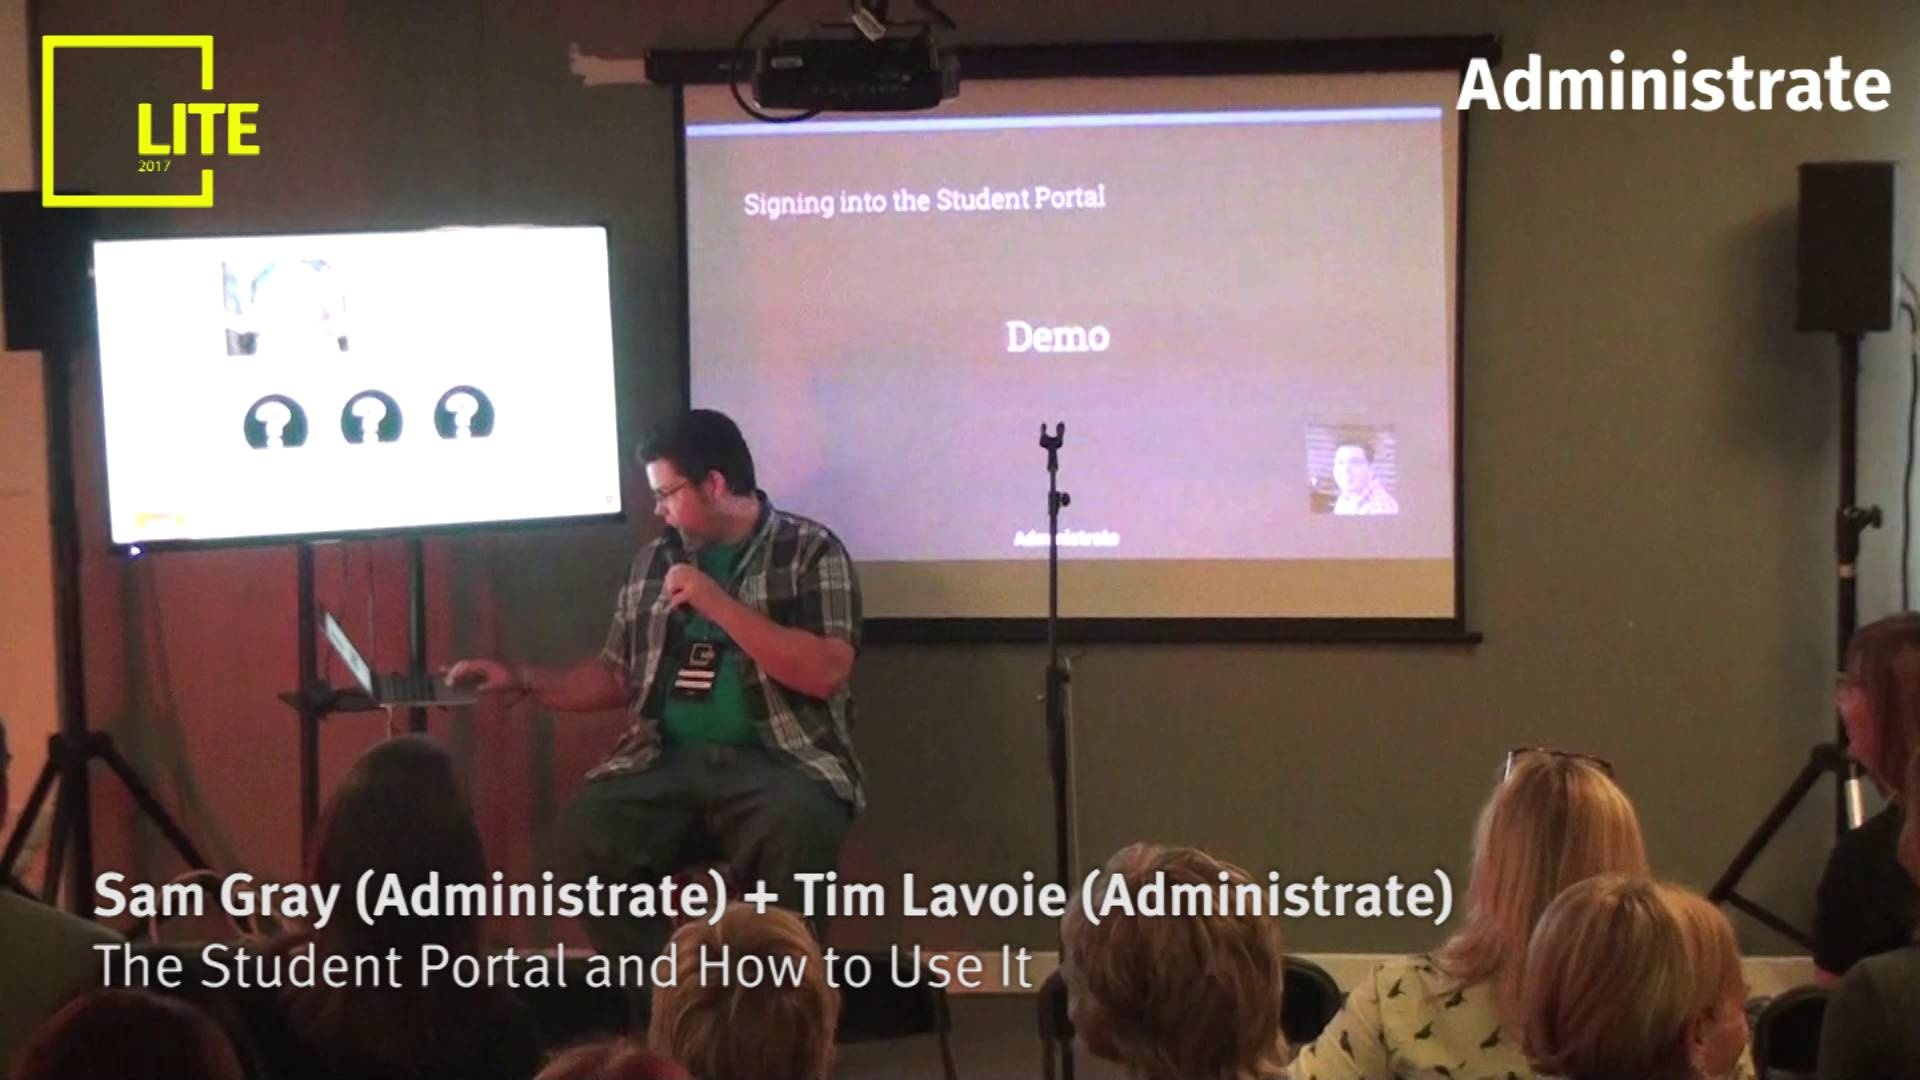 The Student Portal and How to Use It [Sam Gray & Tim Lavoie]